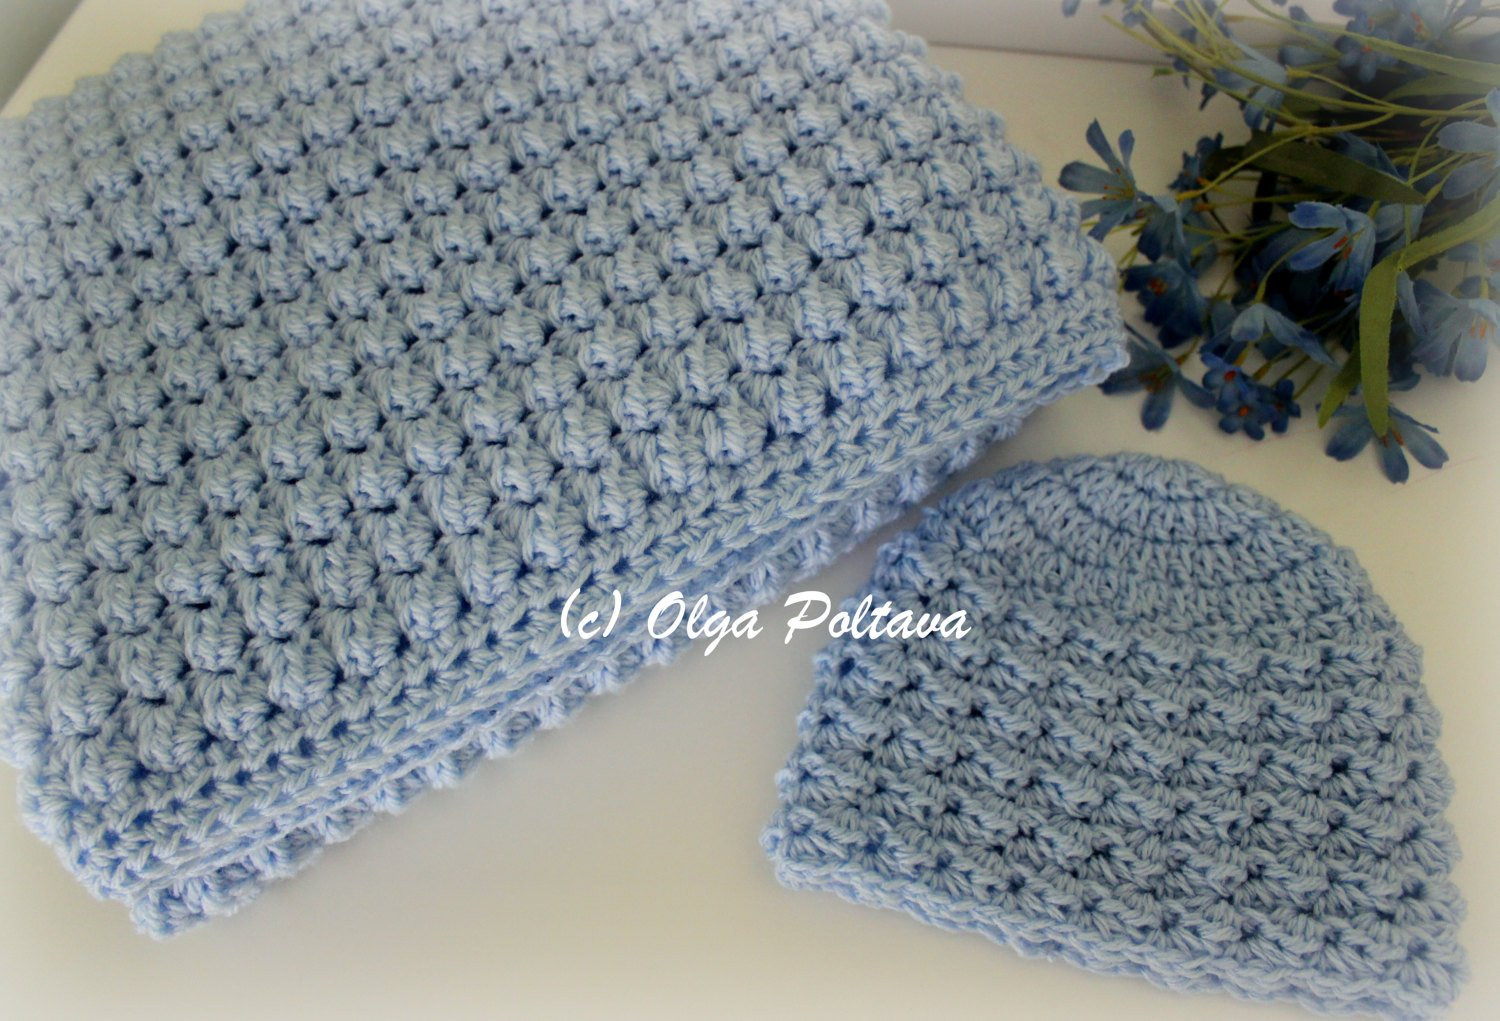 Baby Boy Crochet Blanket Patterns New Baby Boy Set Crochet Pattern Baby Blanket and Hat Easy Of Baby Boy Crochet Blanket Patterns Lovely My Crochet Part 395